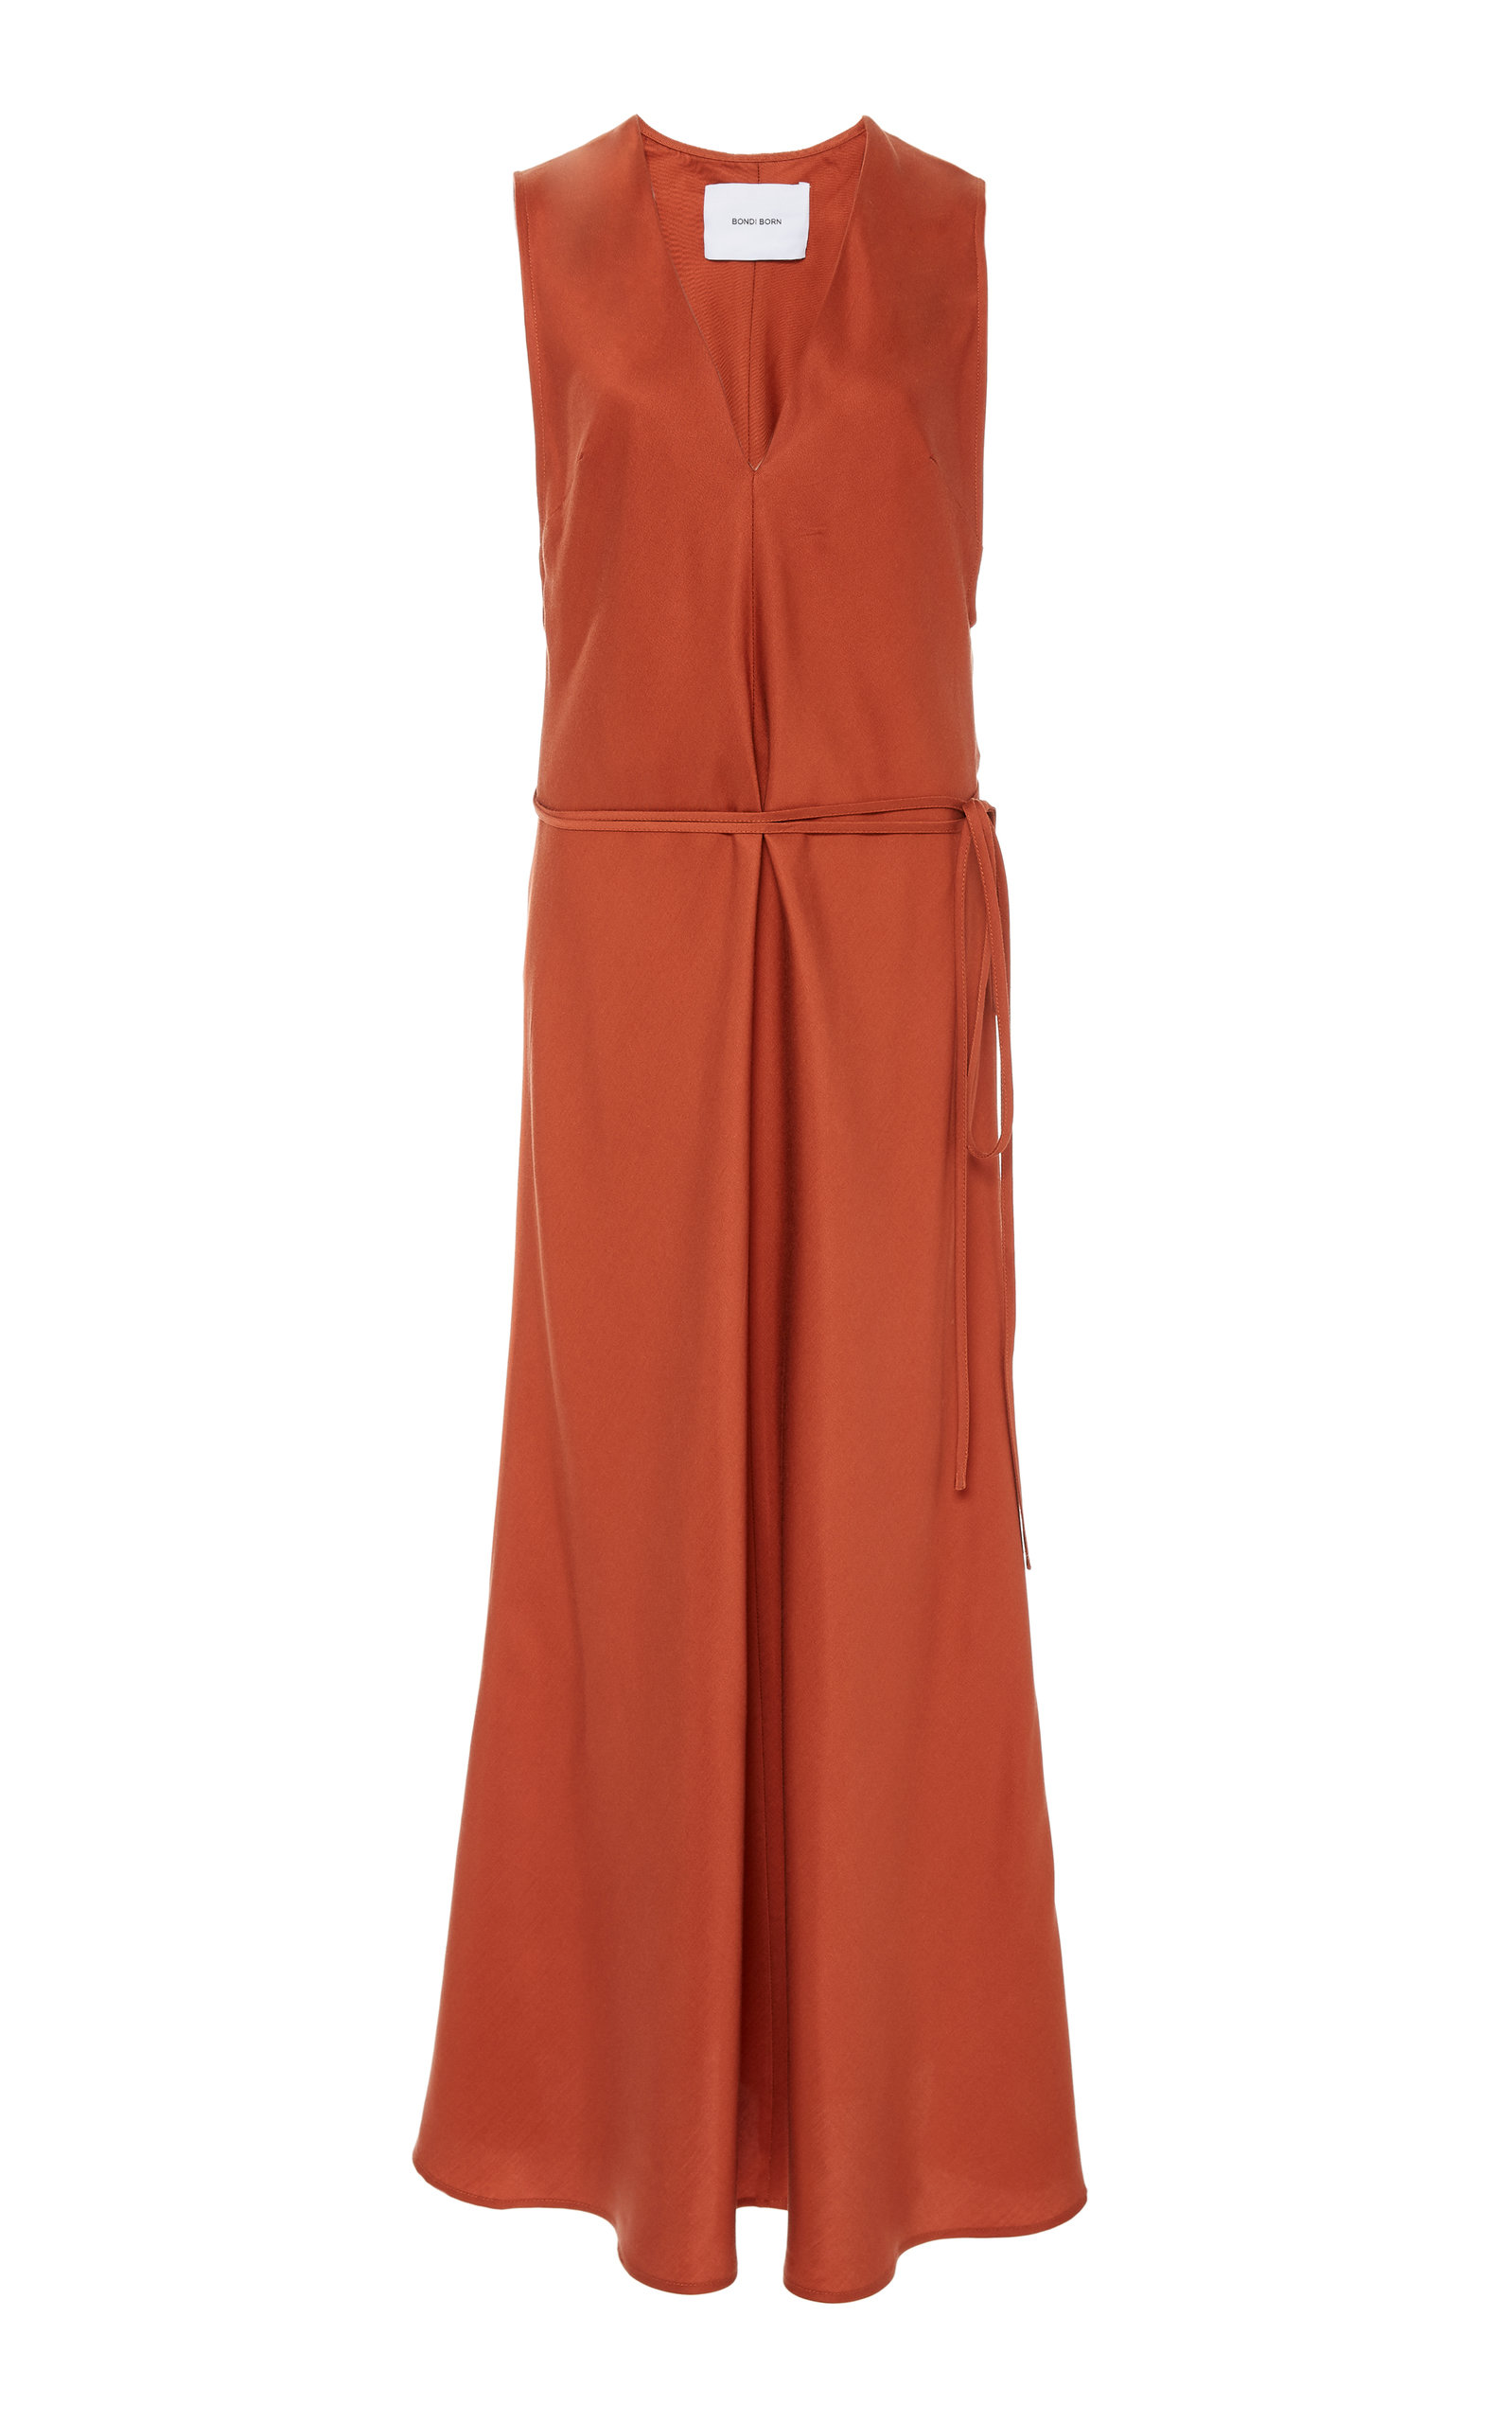 Buy Bondi Born Plunge Satin Maxi Dress online, shop Bondi Born at the best price